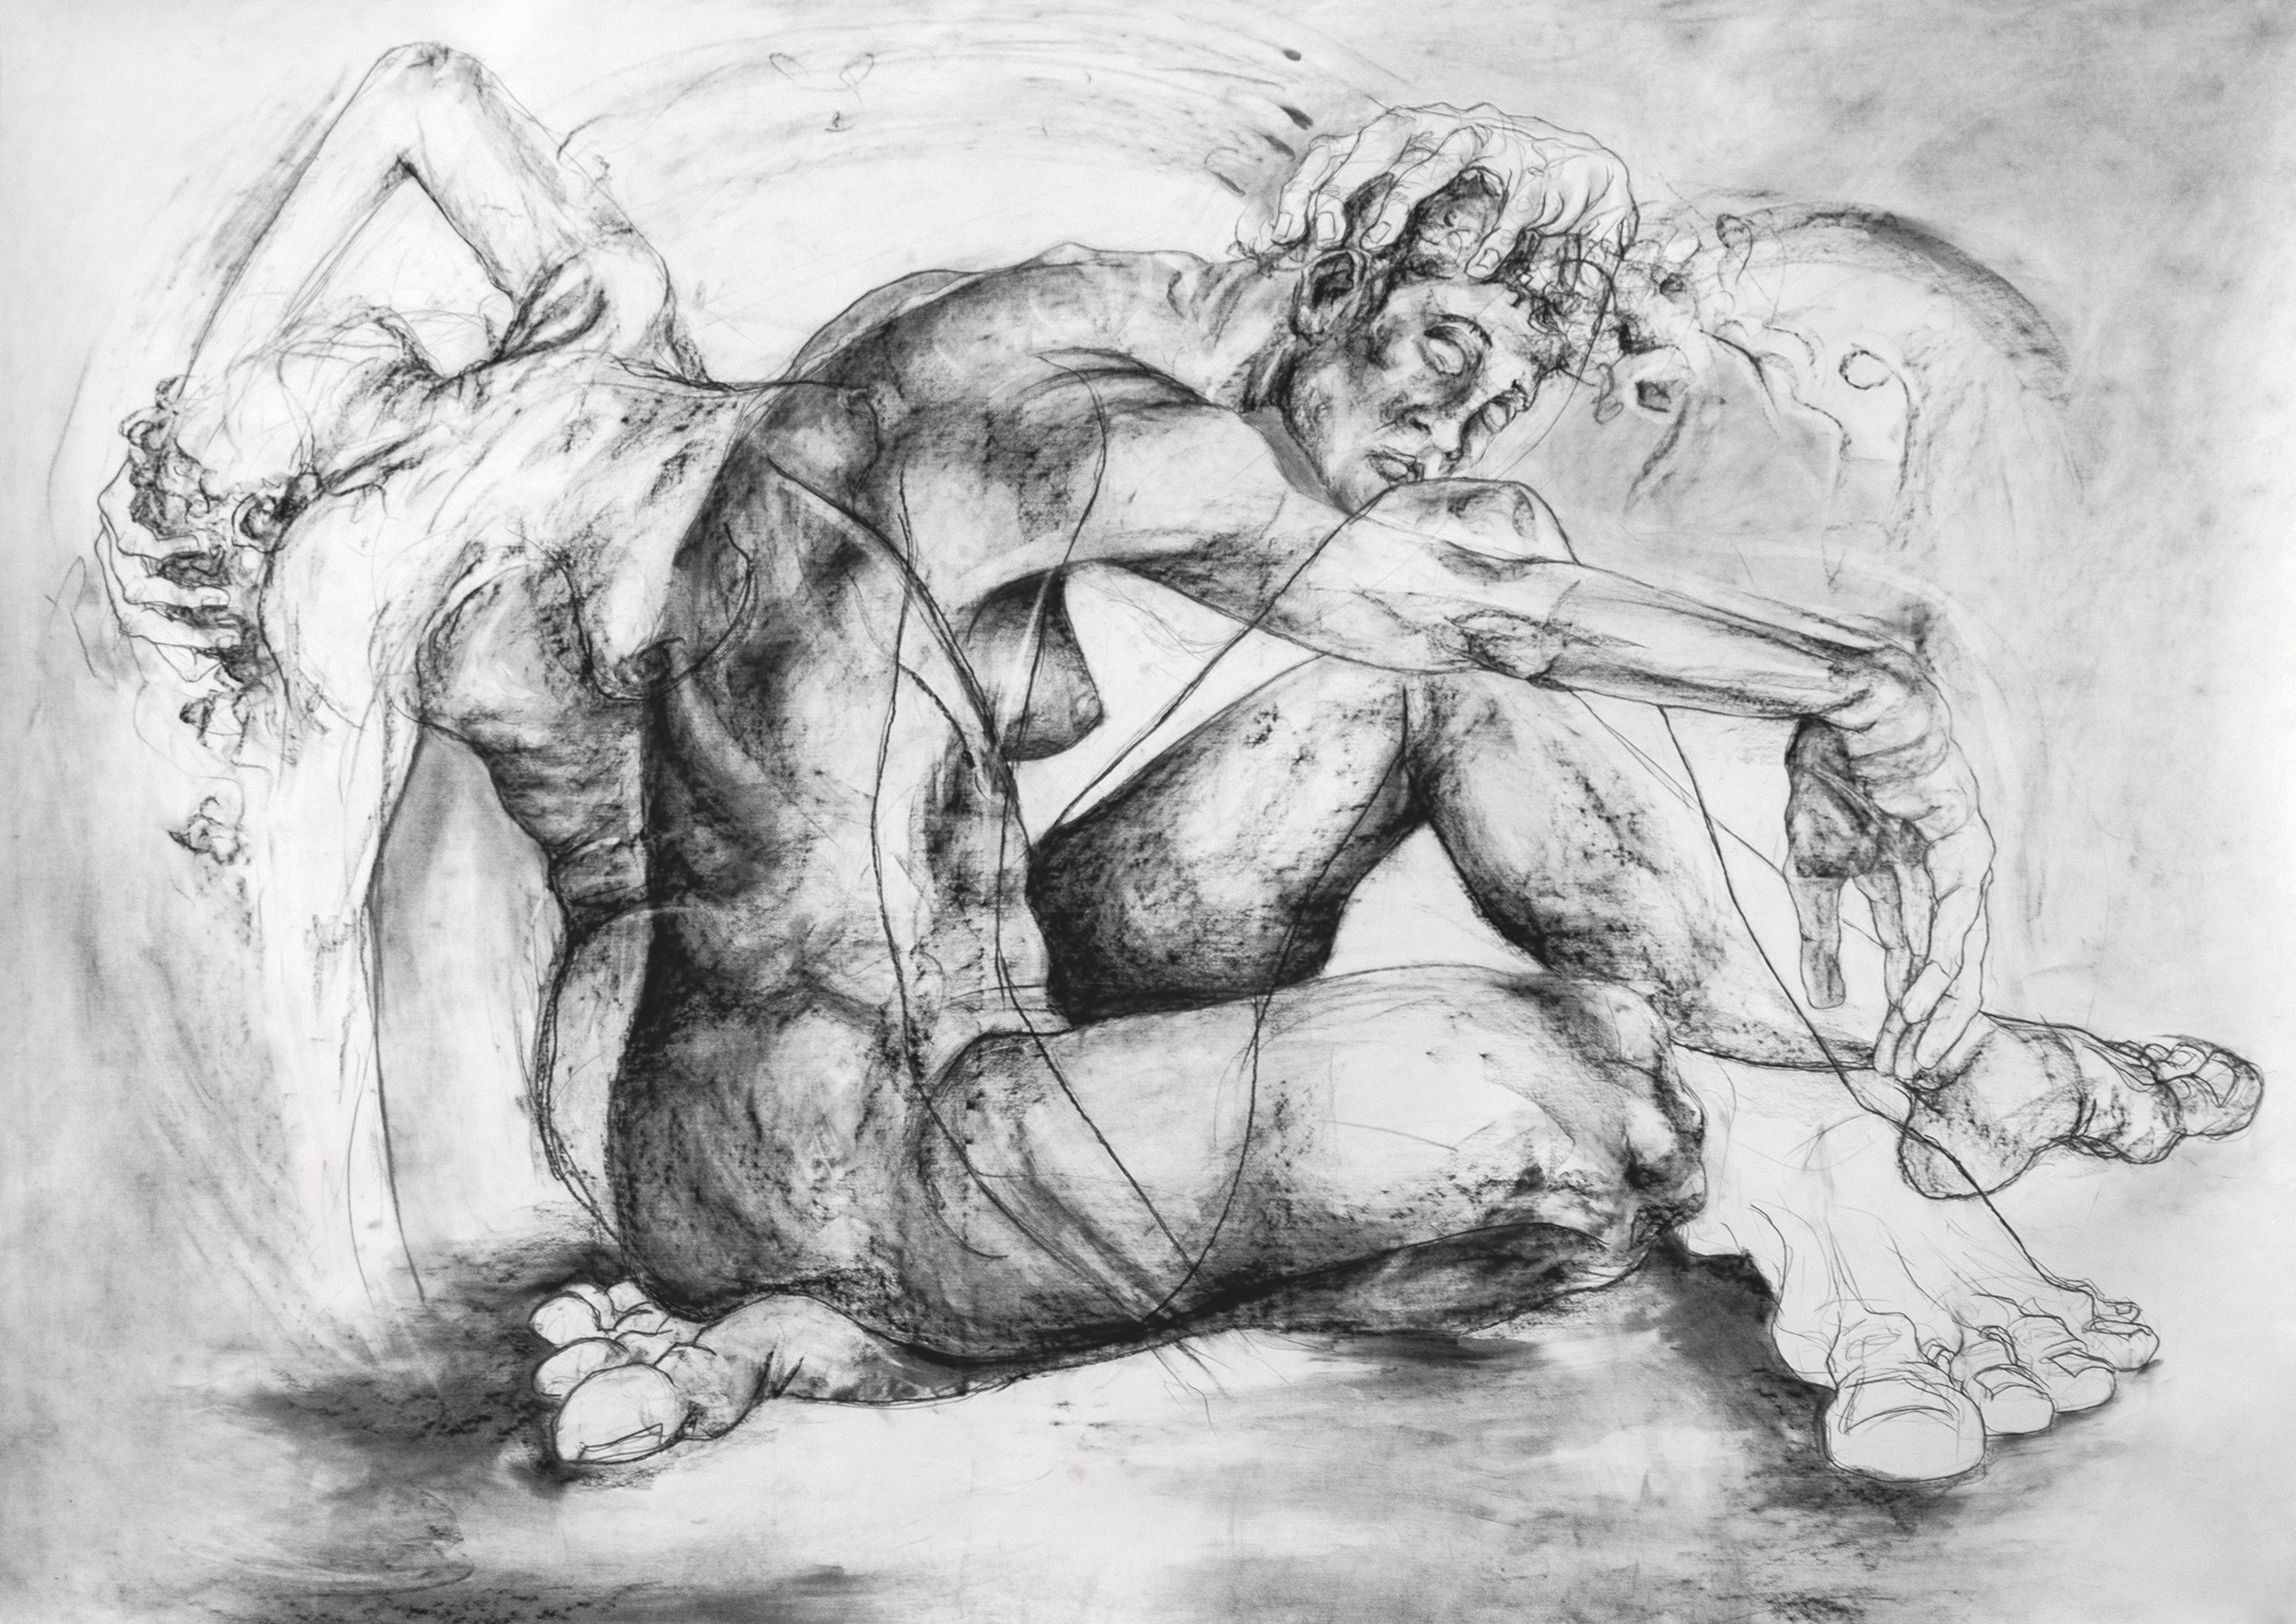 """a study of introspection / 2018 / charcoal / 48"""" x 67.75"""""""